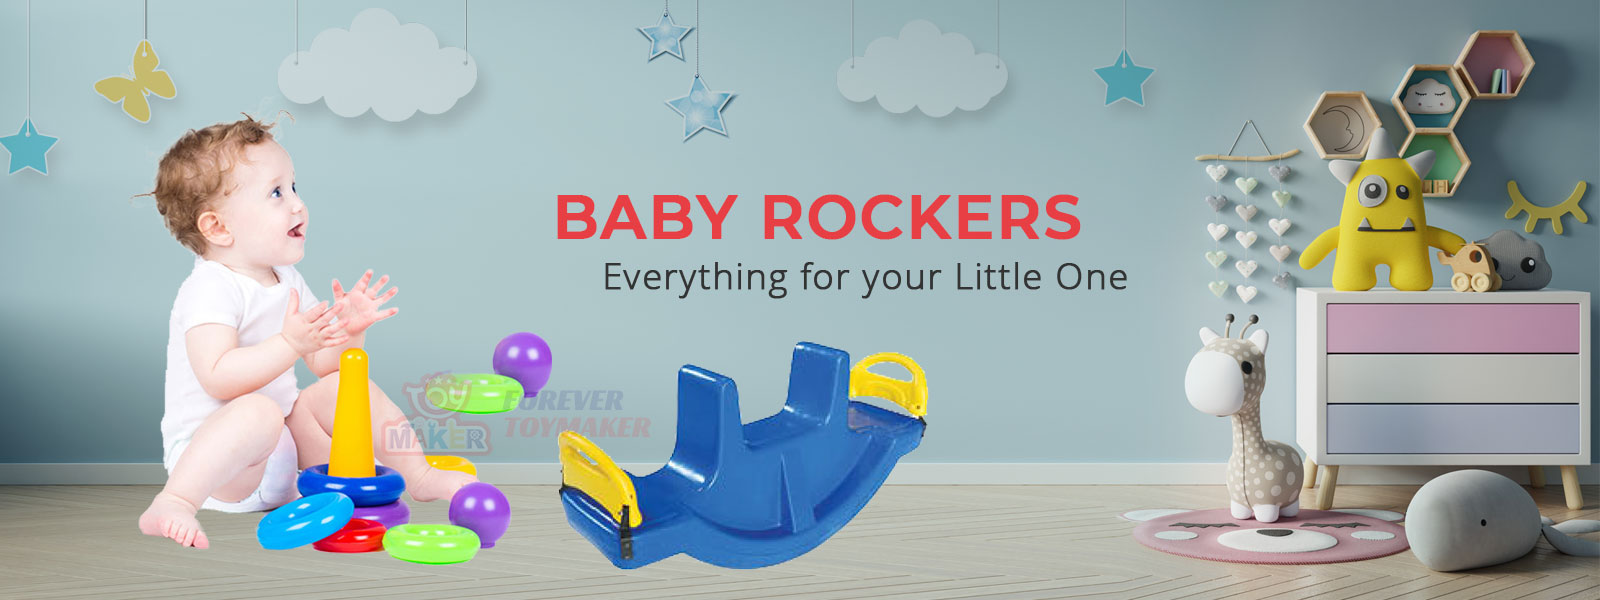 Baby Rockers Manufacturers in Amritsar